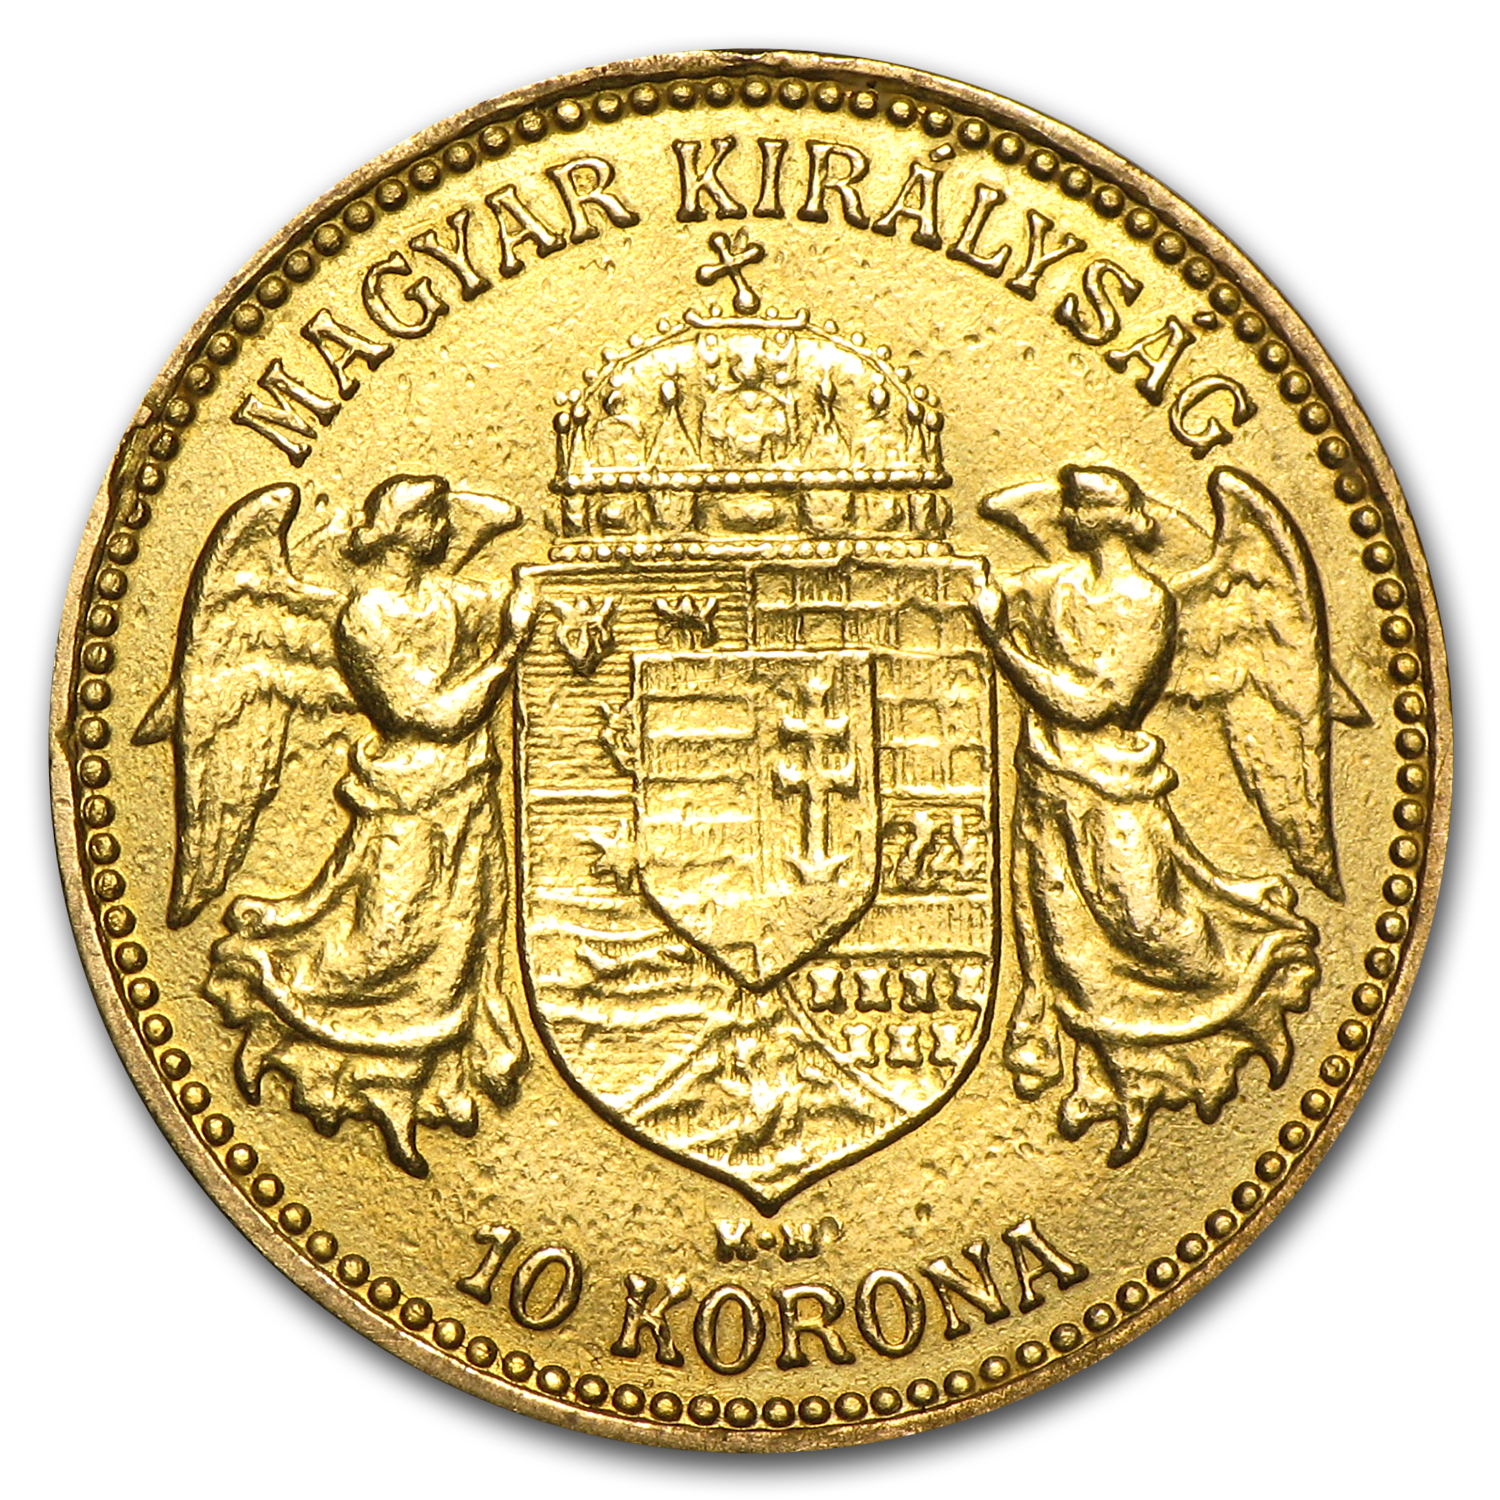 Hungary Gold 10 Korona (Ex-Jewelry)